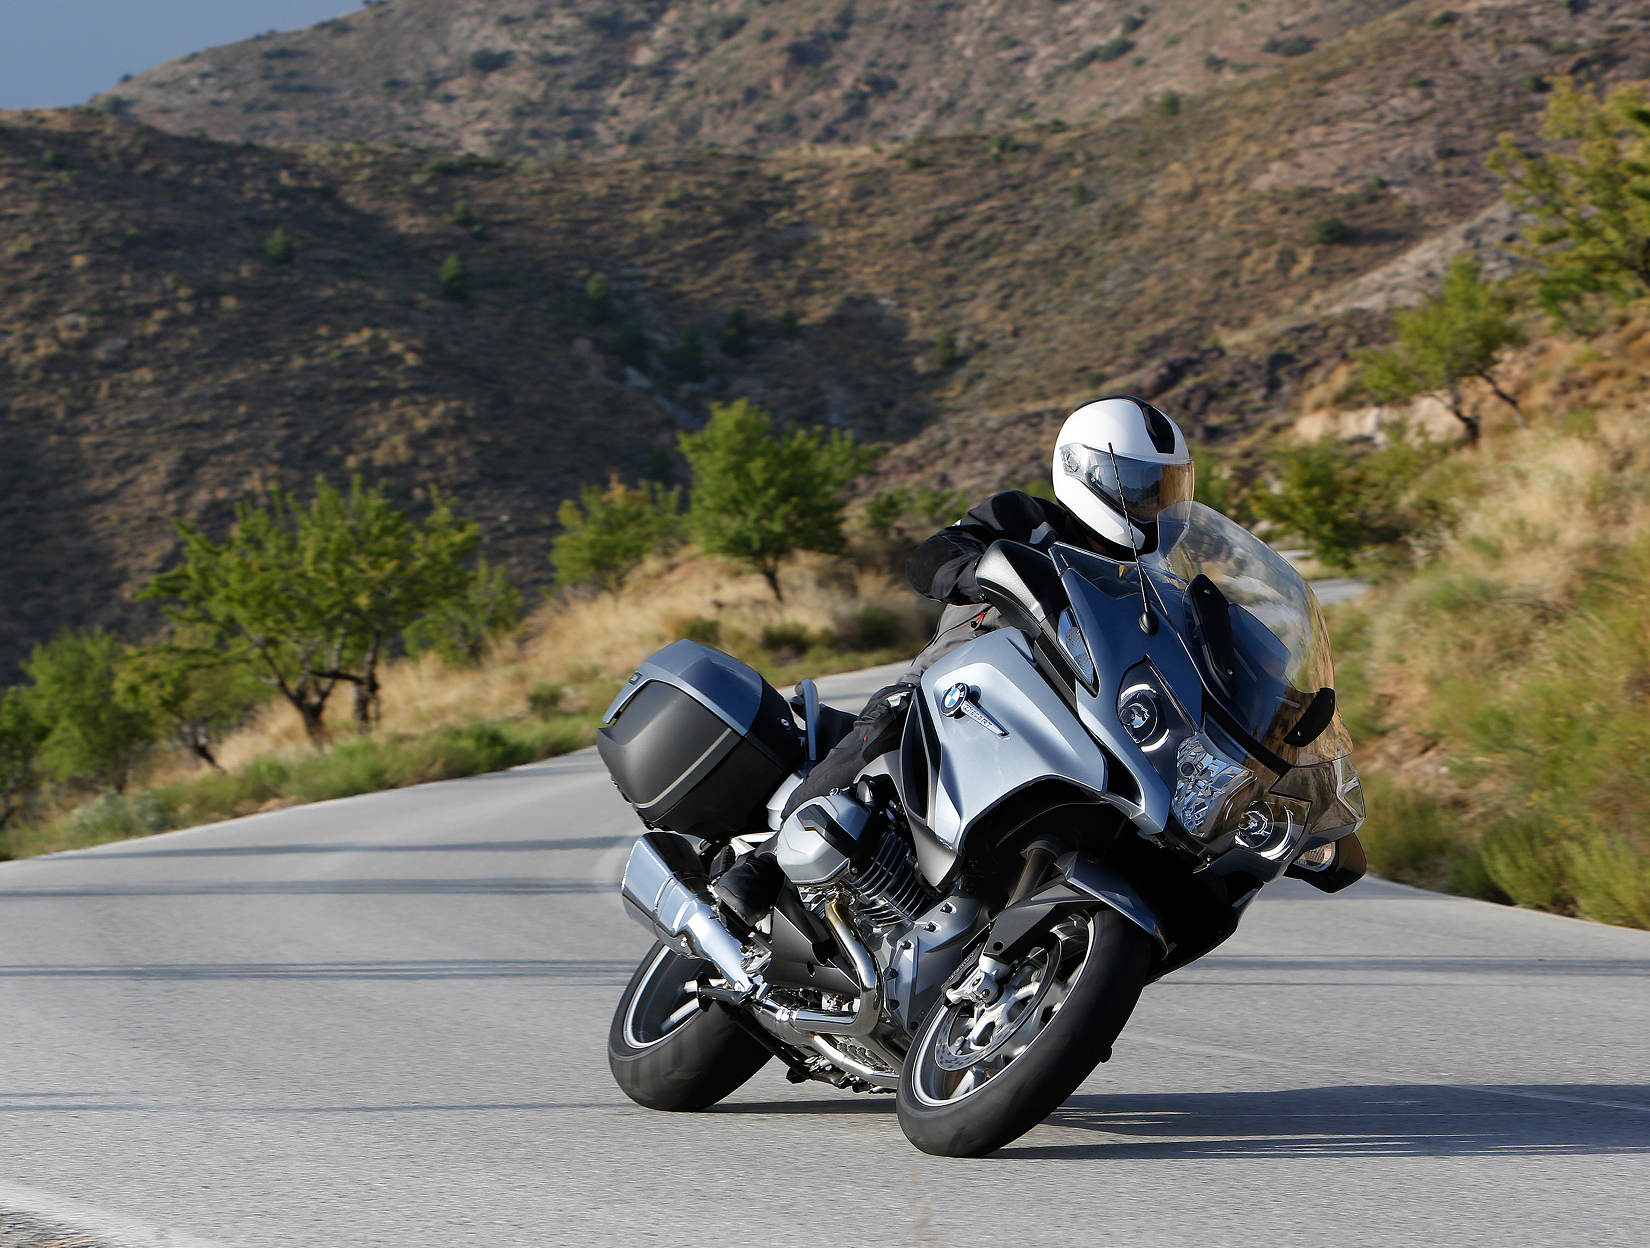 Bmw Redesigns R 1200 Rt Motorcycledailycom Motorcycle News